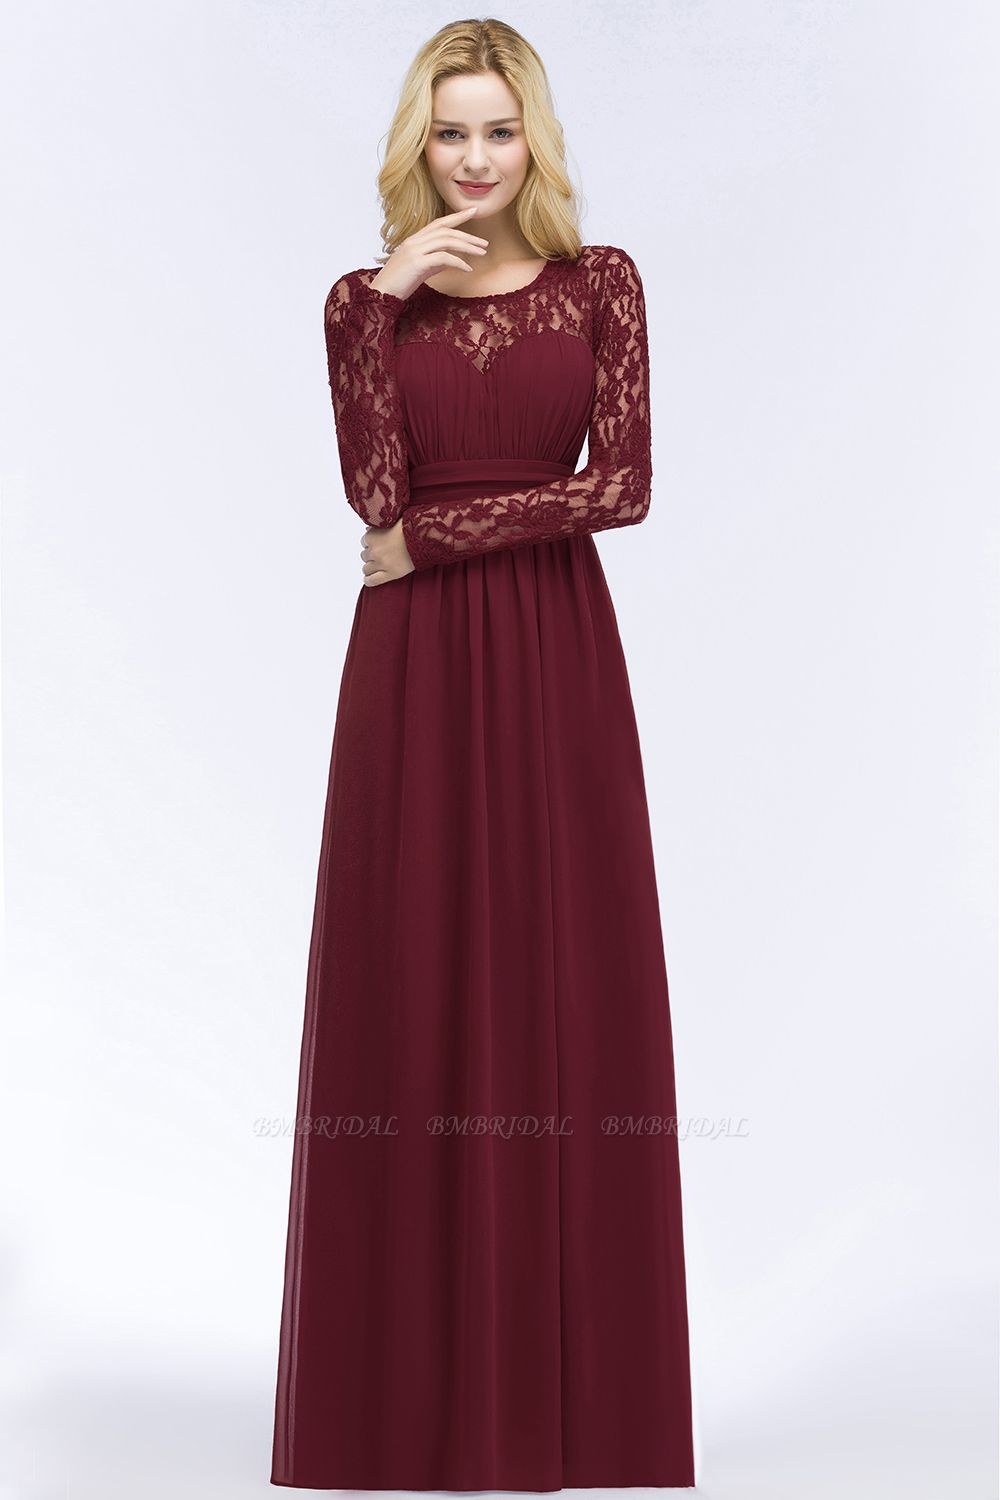 BMbridal A-line Floor Length Long Sleeves Lace Chiffon Bridesmaid Dress